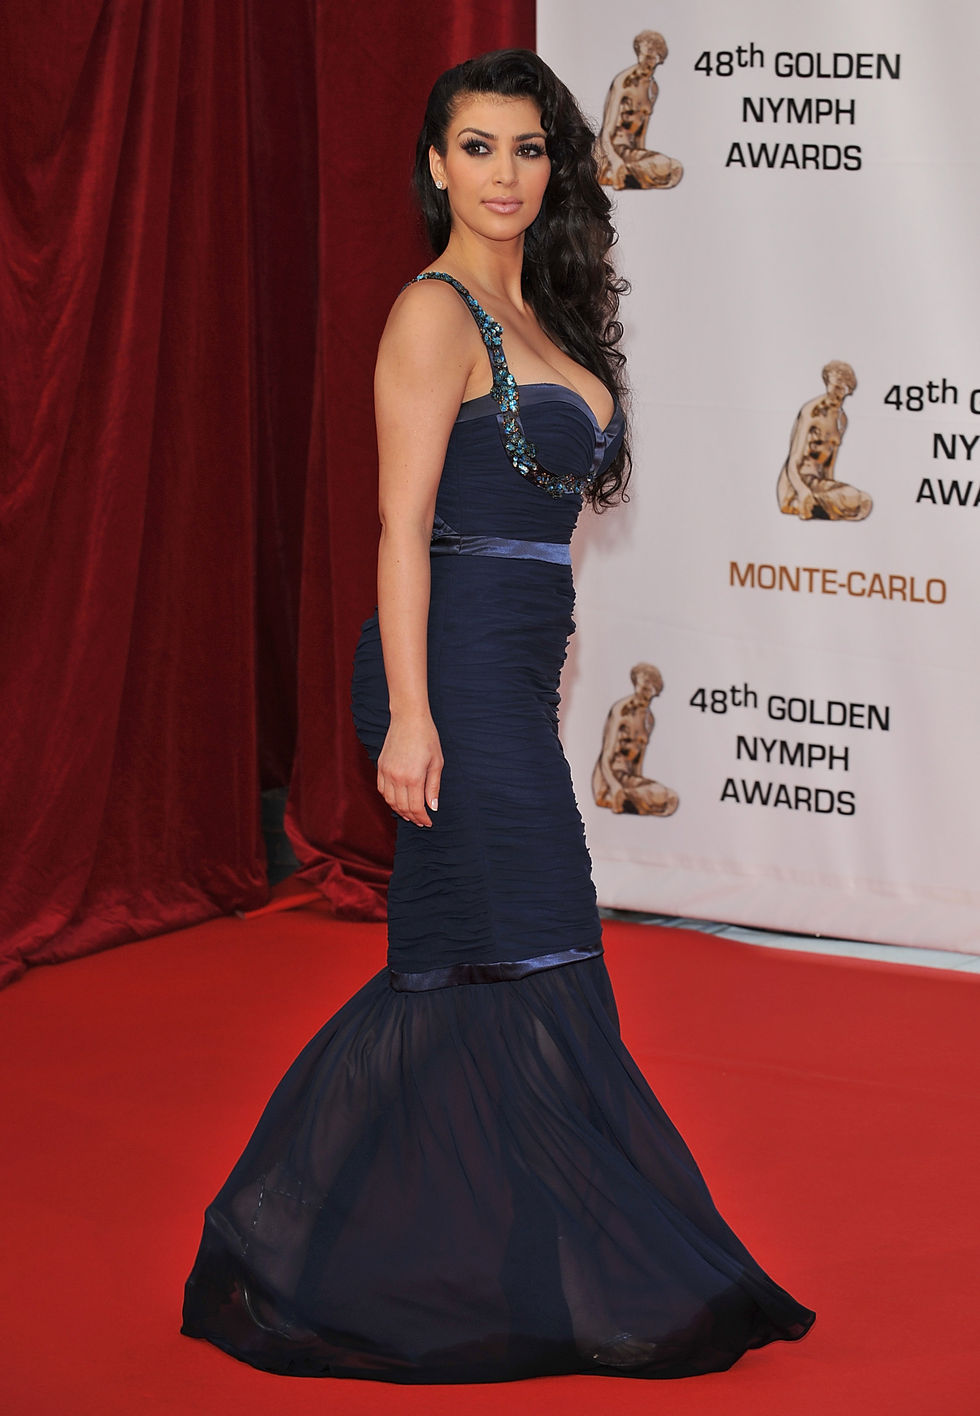 kim-kardashian-golden-nymph-awards-ceremony-in-monte-carlo-01